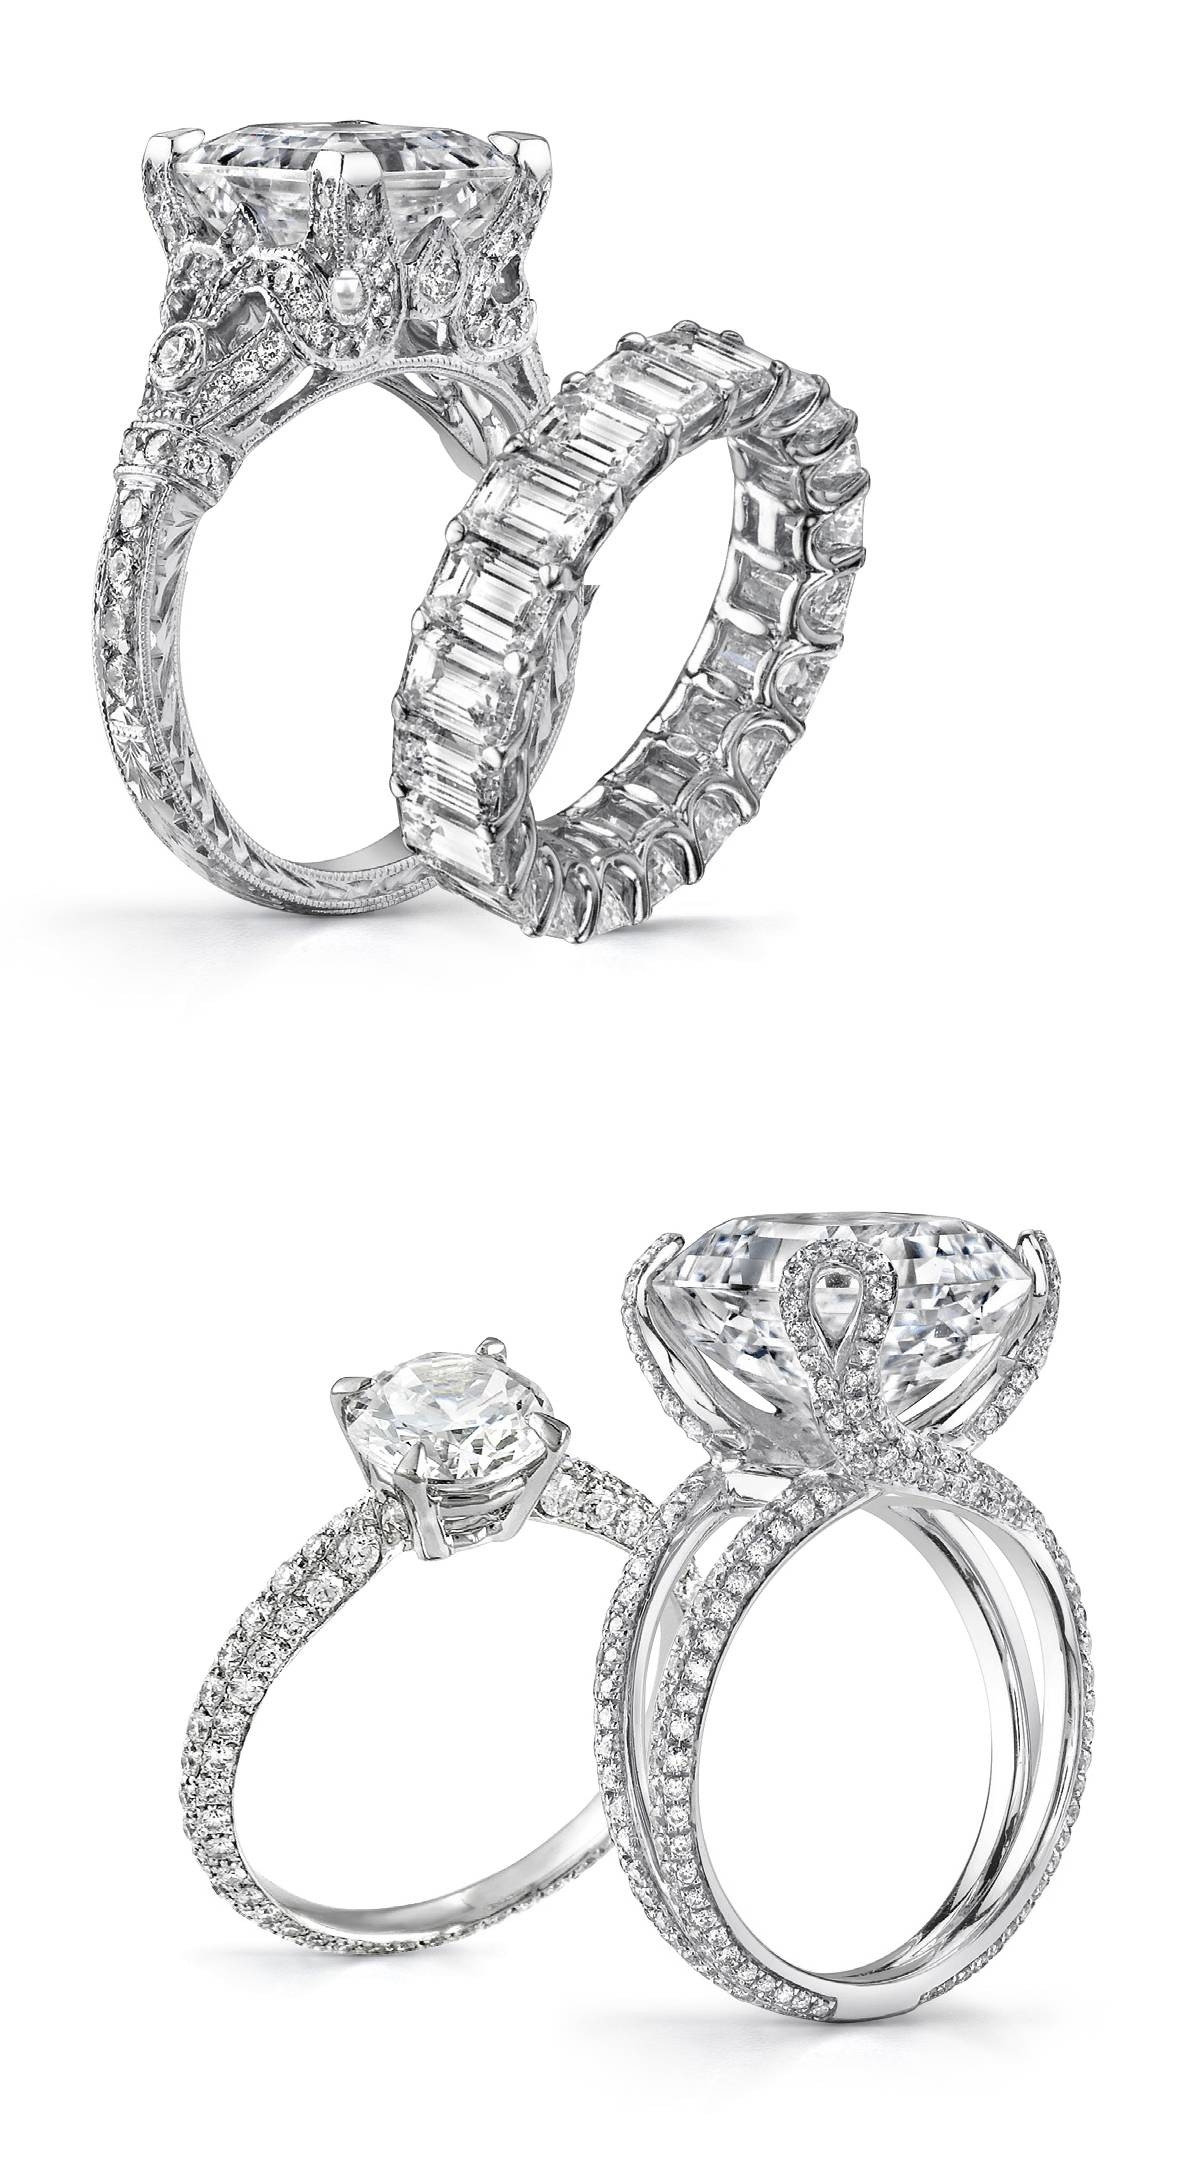 Engagement Rings Washington Dc | Protea Diamonds Regarding Washington Dc Engagement Rings (Gallery 2 of 15)